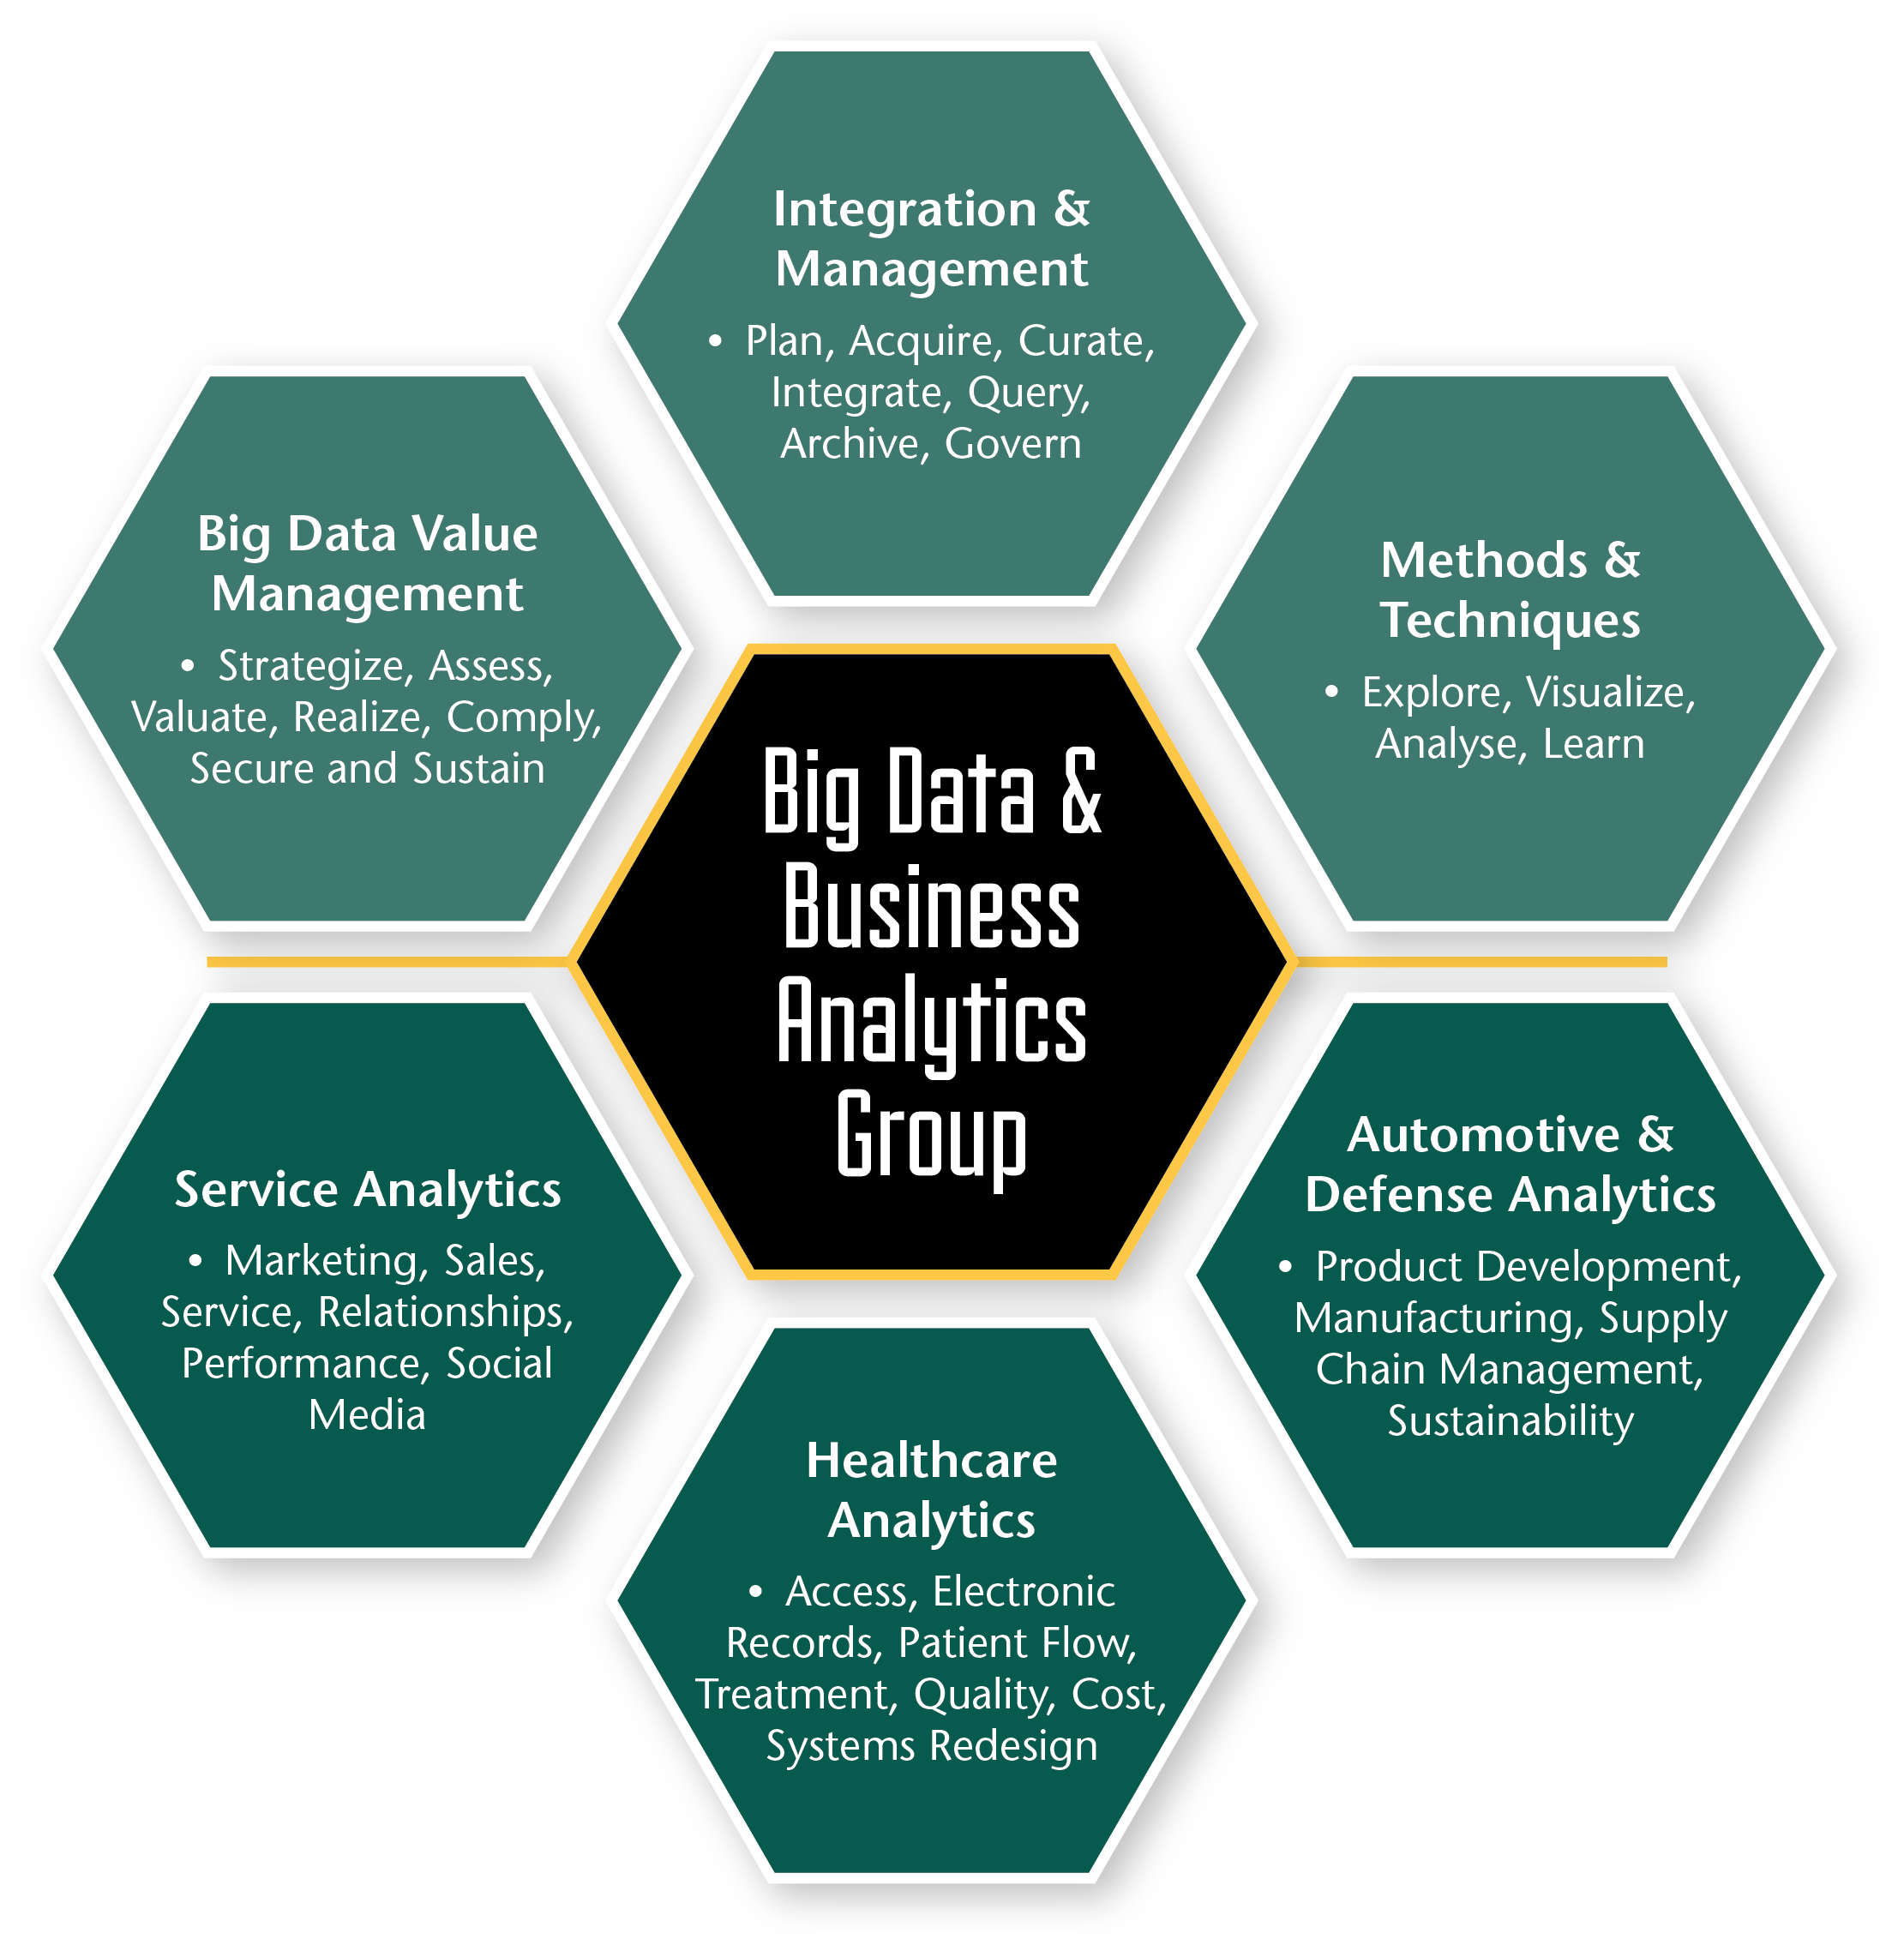 How to Get Business Value From Big Data Analytics 2